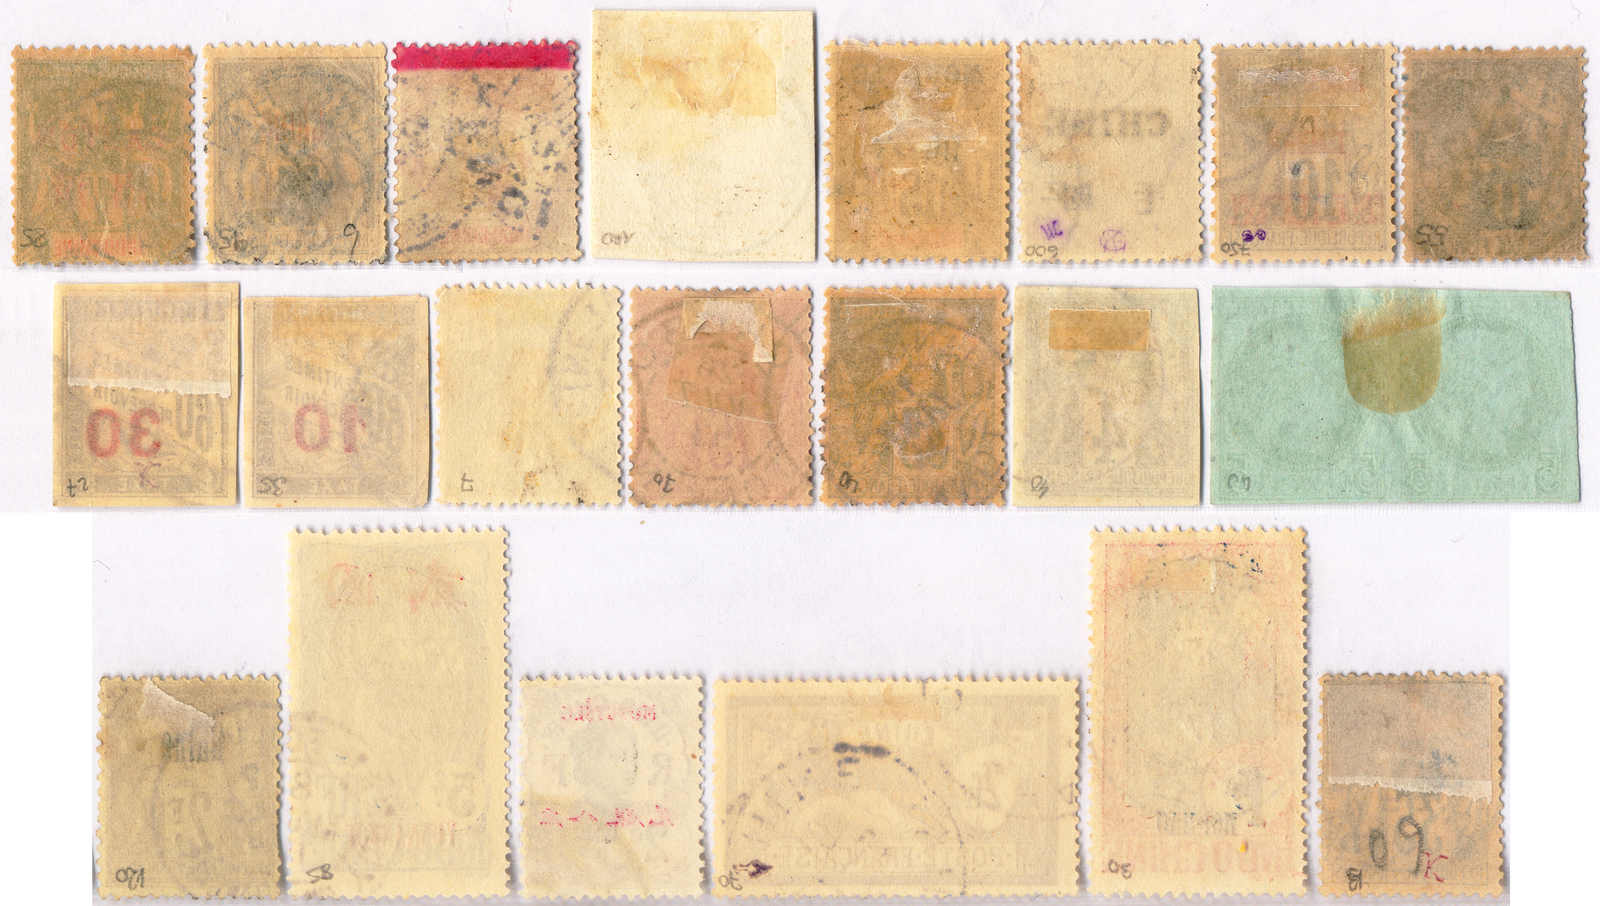 Lot 30090 - China collections and lots french colonies asia -  Classicphil GmbH Auction #1